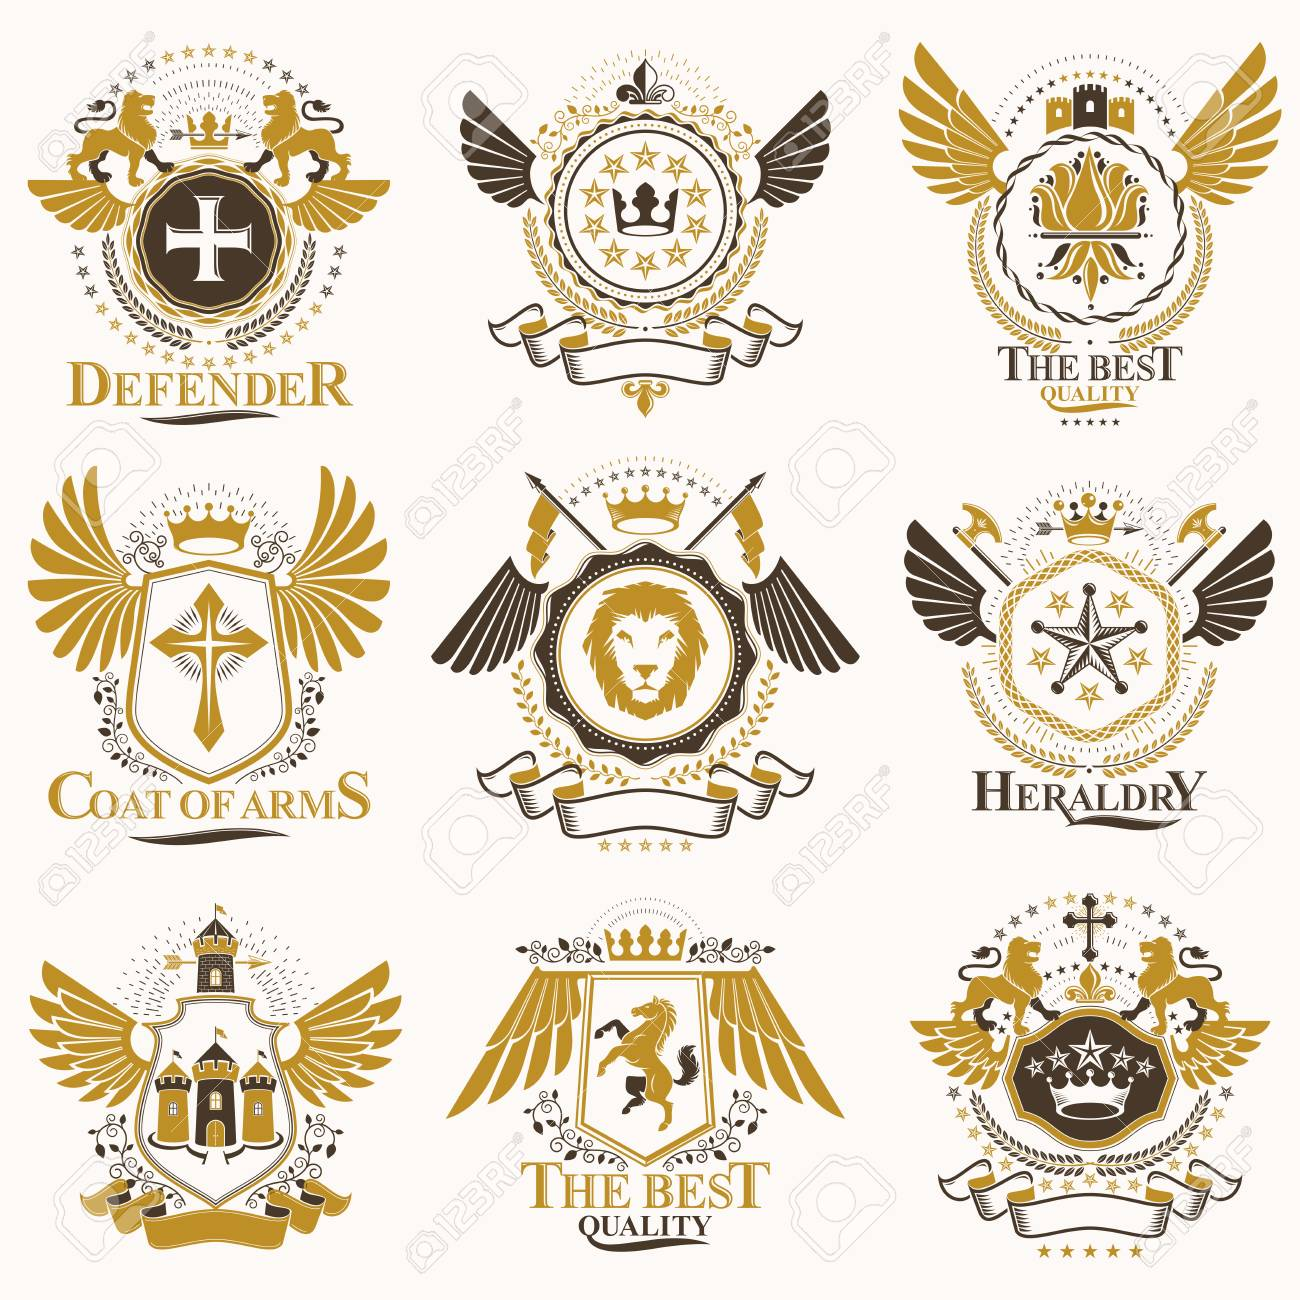 Collection of vector heraldic decorative coat of arms isolated on white and created using vintage design elements, monarch crowns, pentagonal stars, armory, wild animals. - 115110779